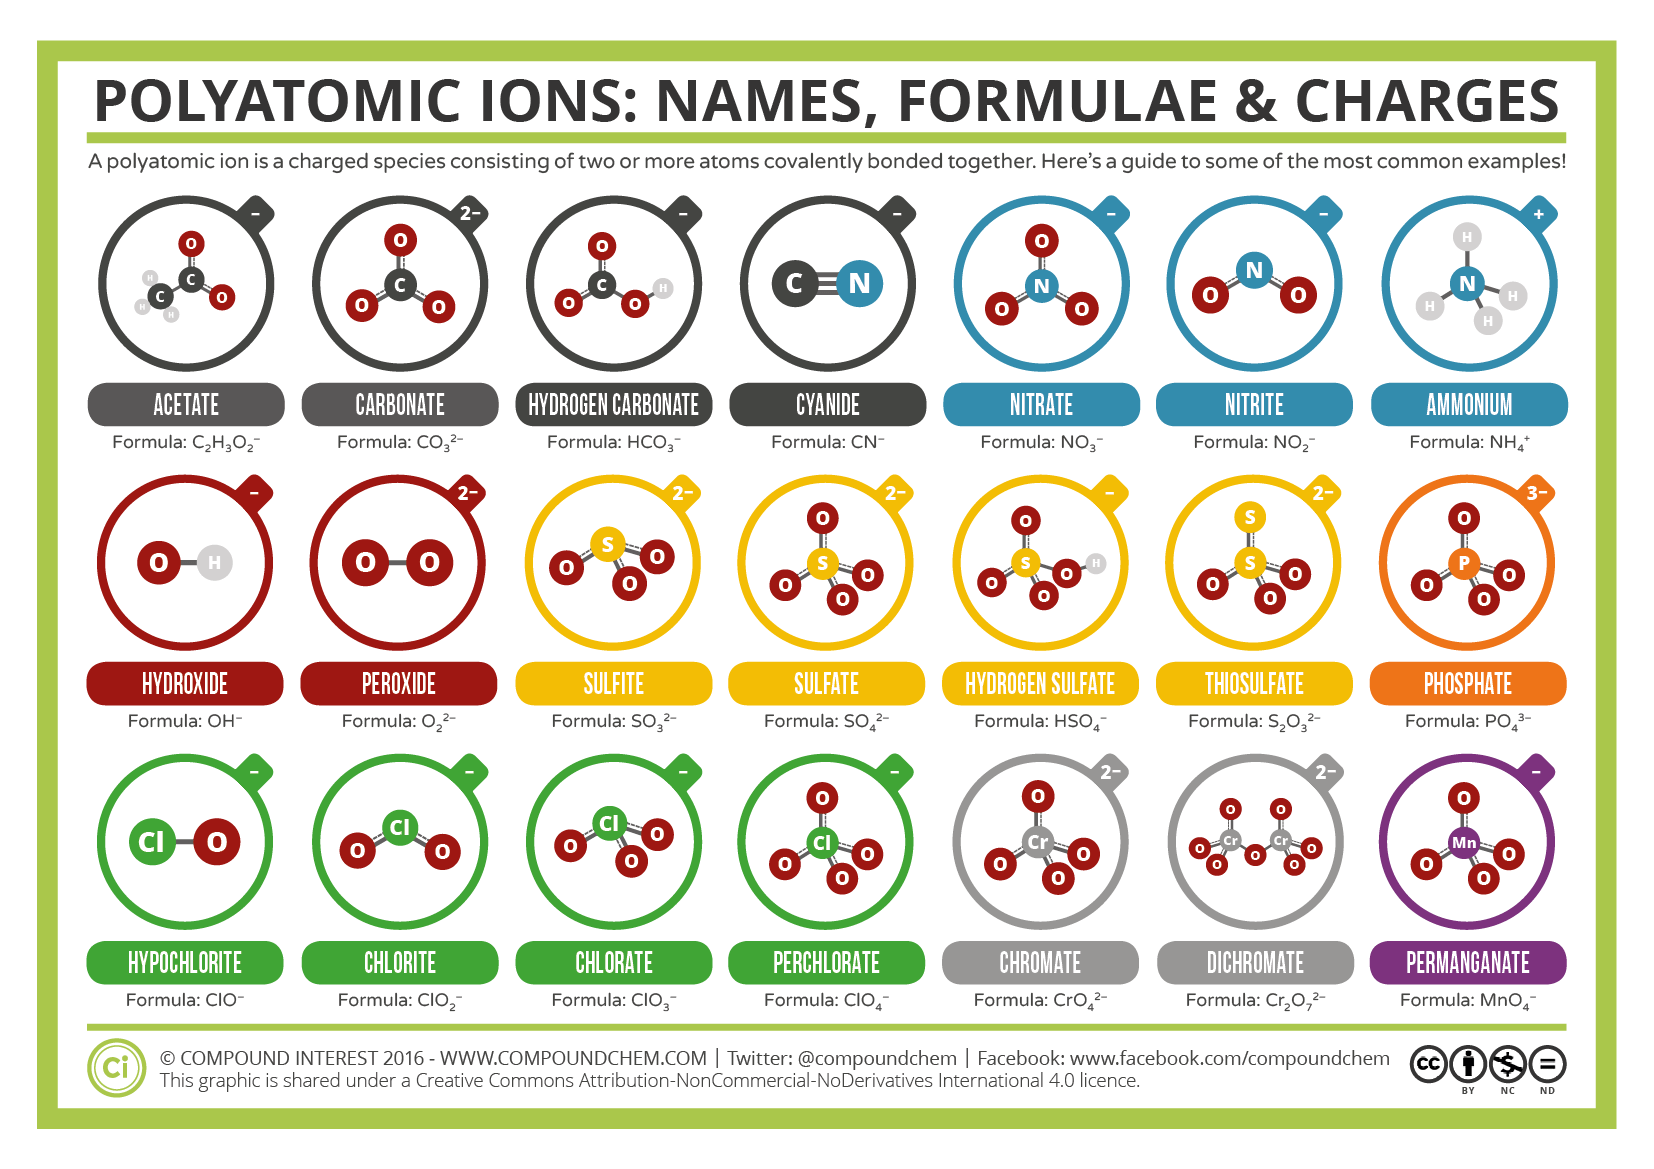 A Guide To Common Polyatomic Ions V2